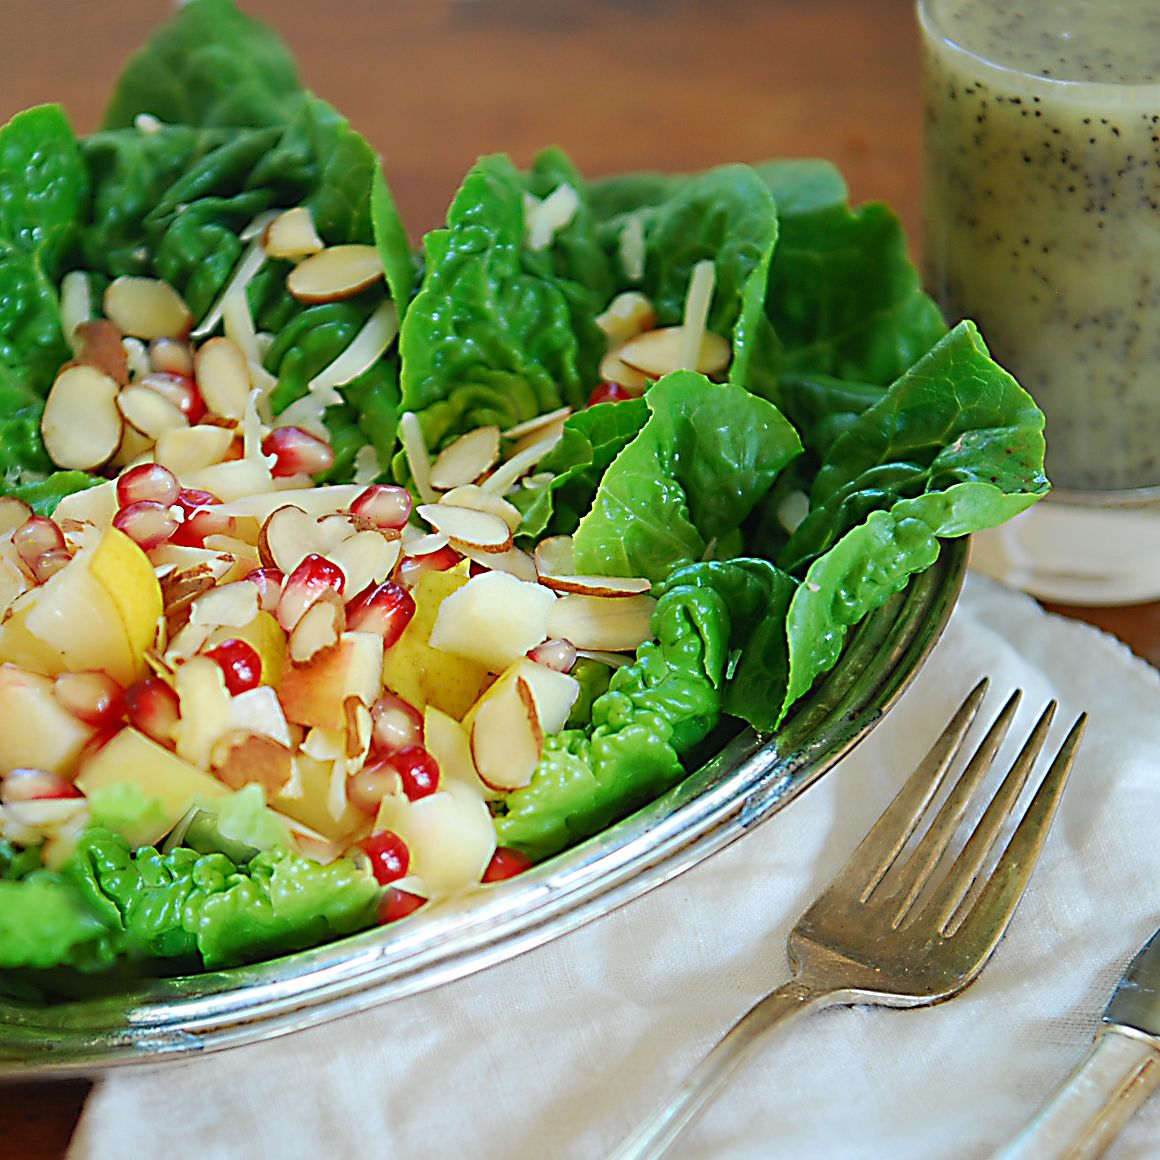 lettuce salad with fruit